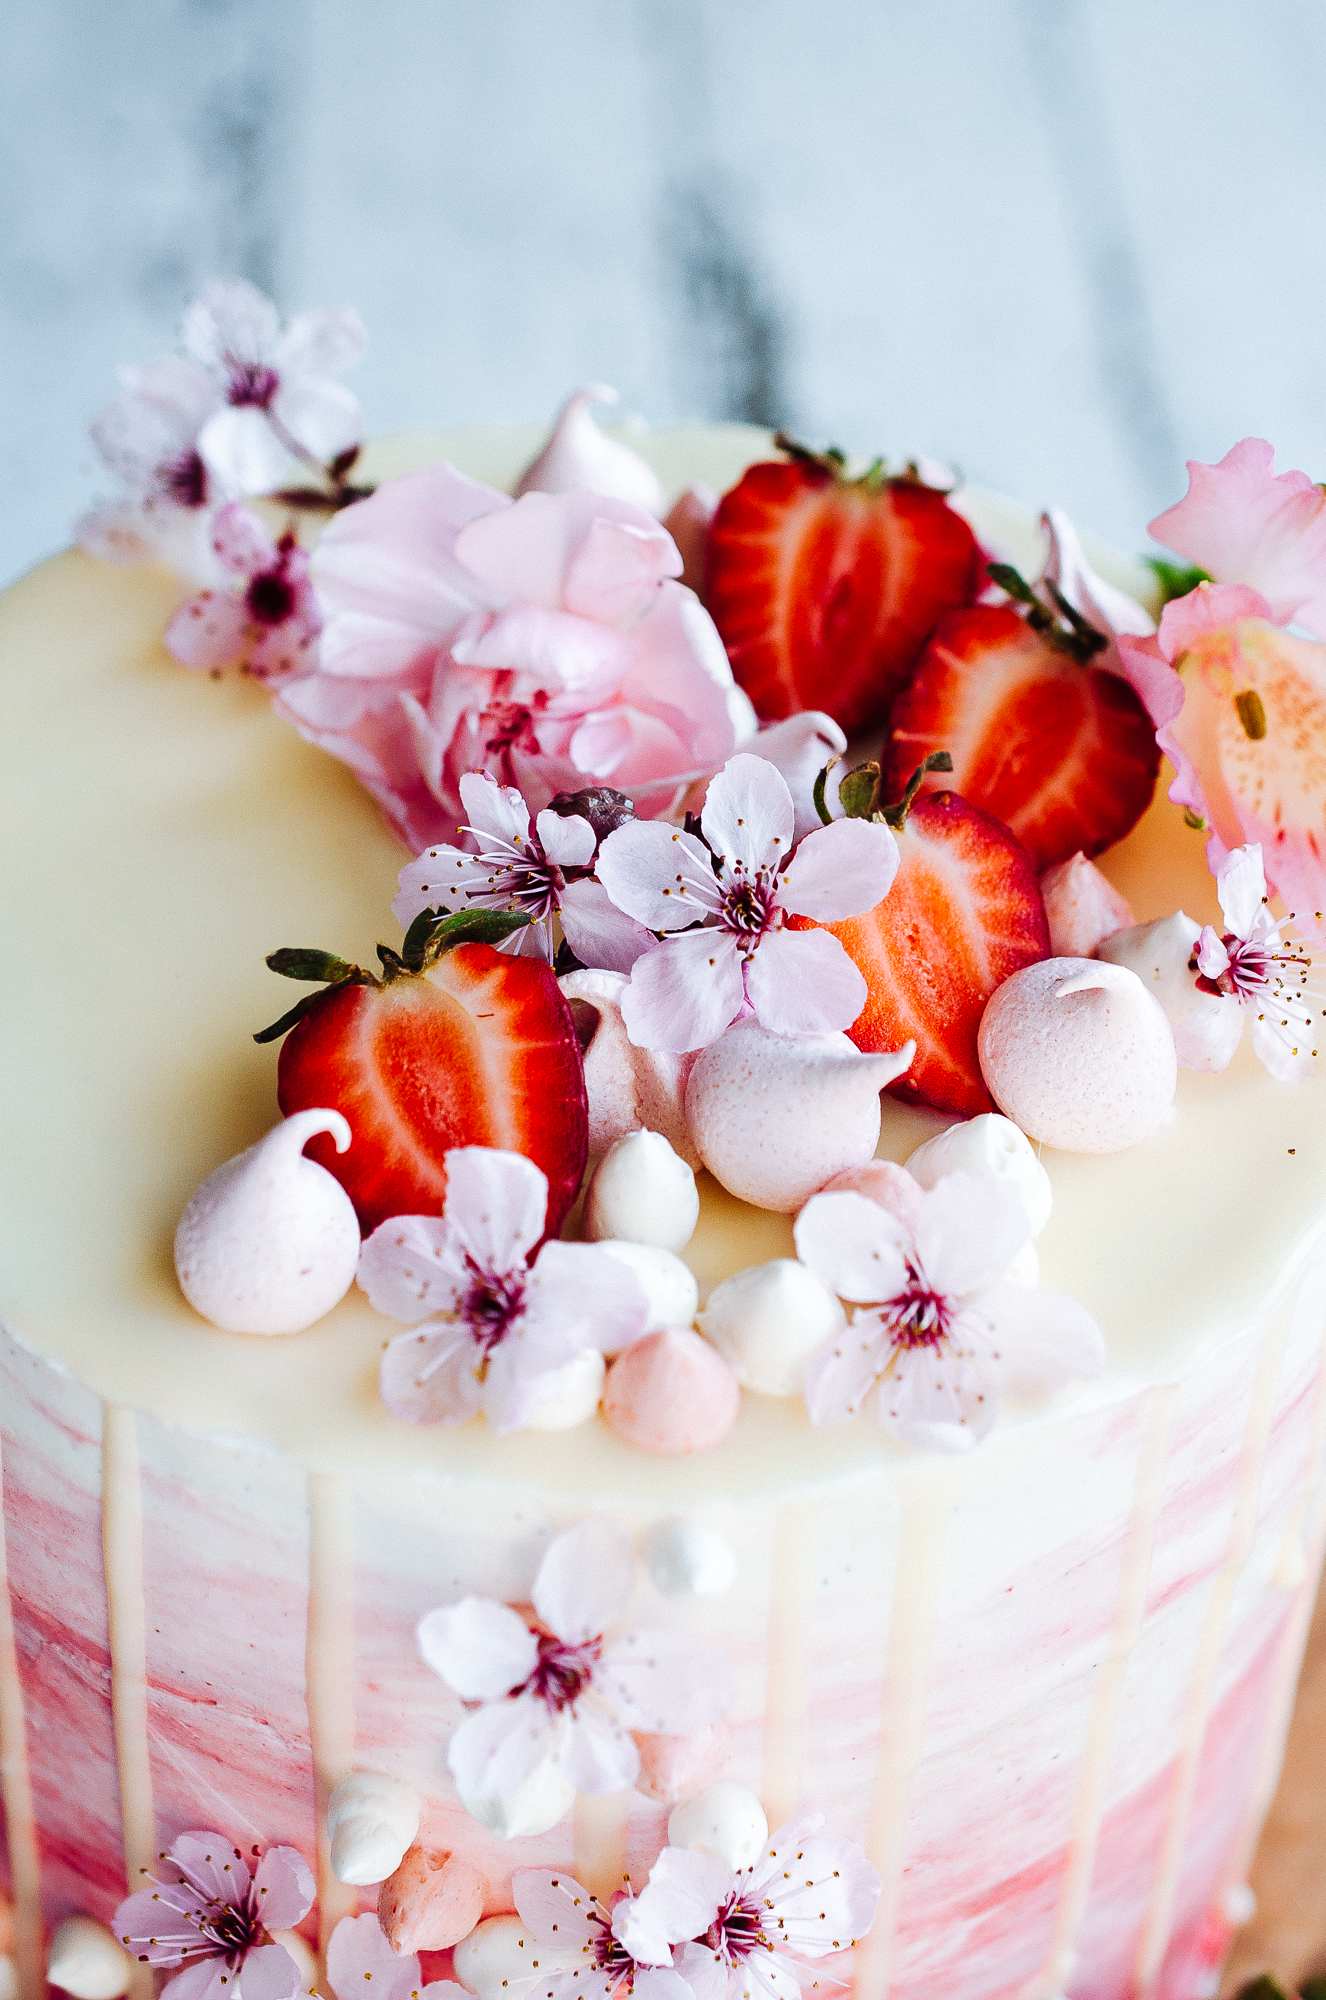 Strawberry and vanilla cake 13.jpg